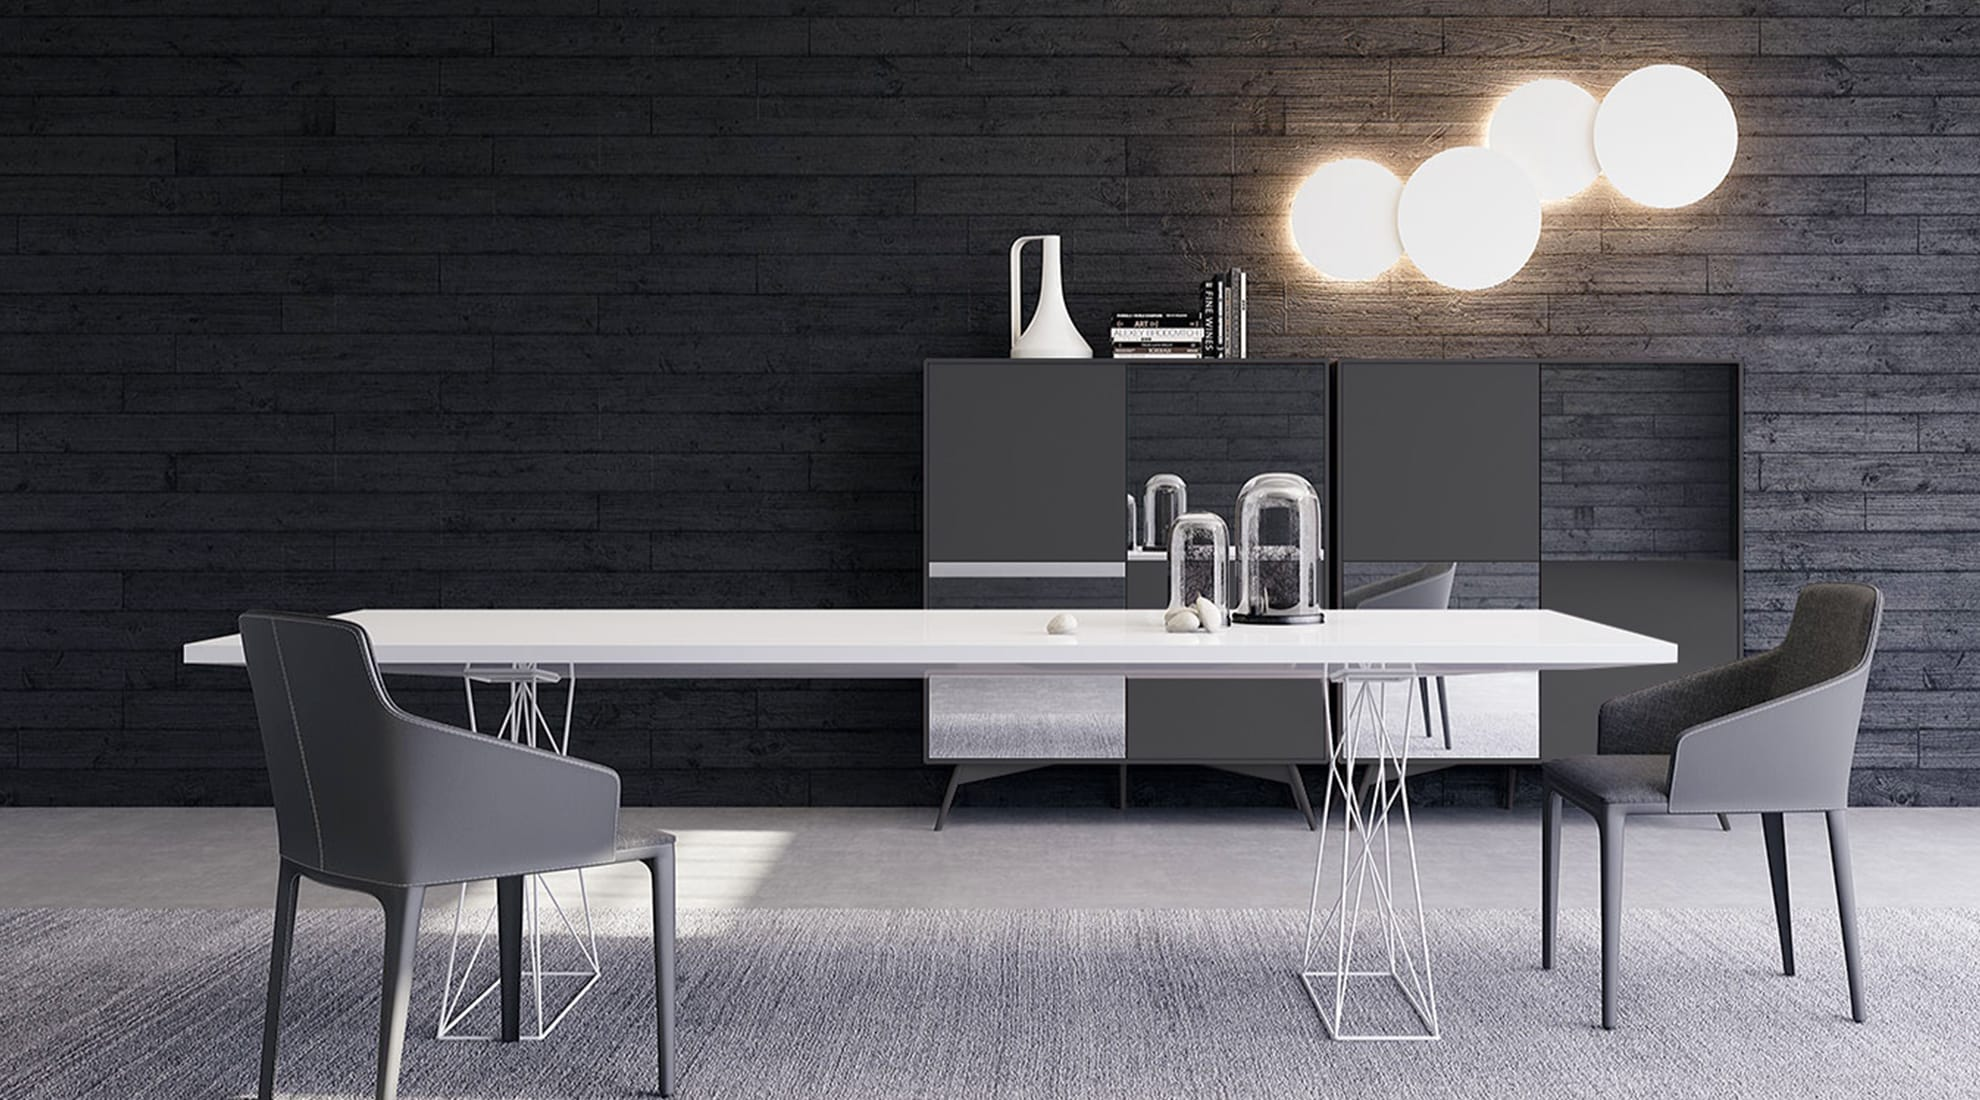 Curzon Dining Table by Modloft and Puck 2-Light Combo by Vibia